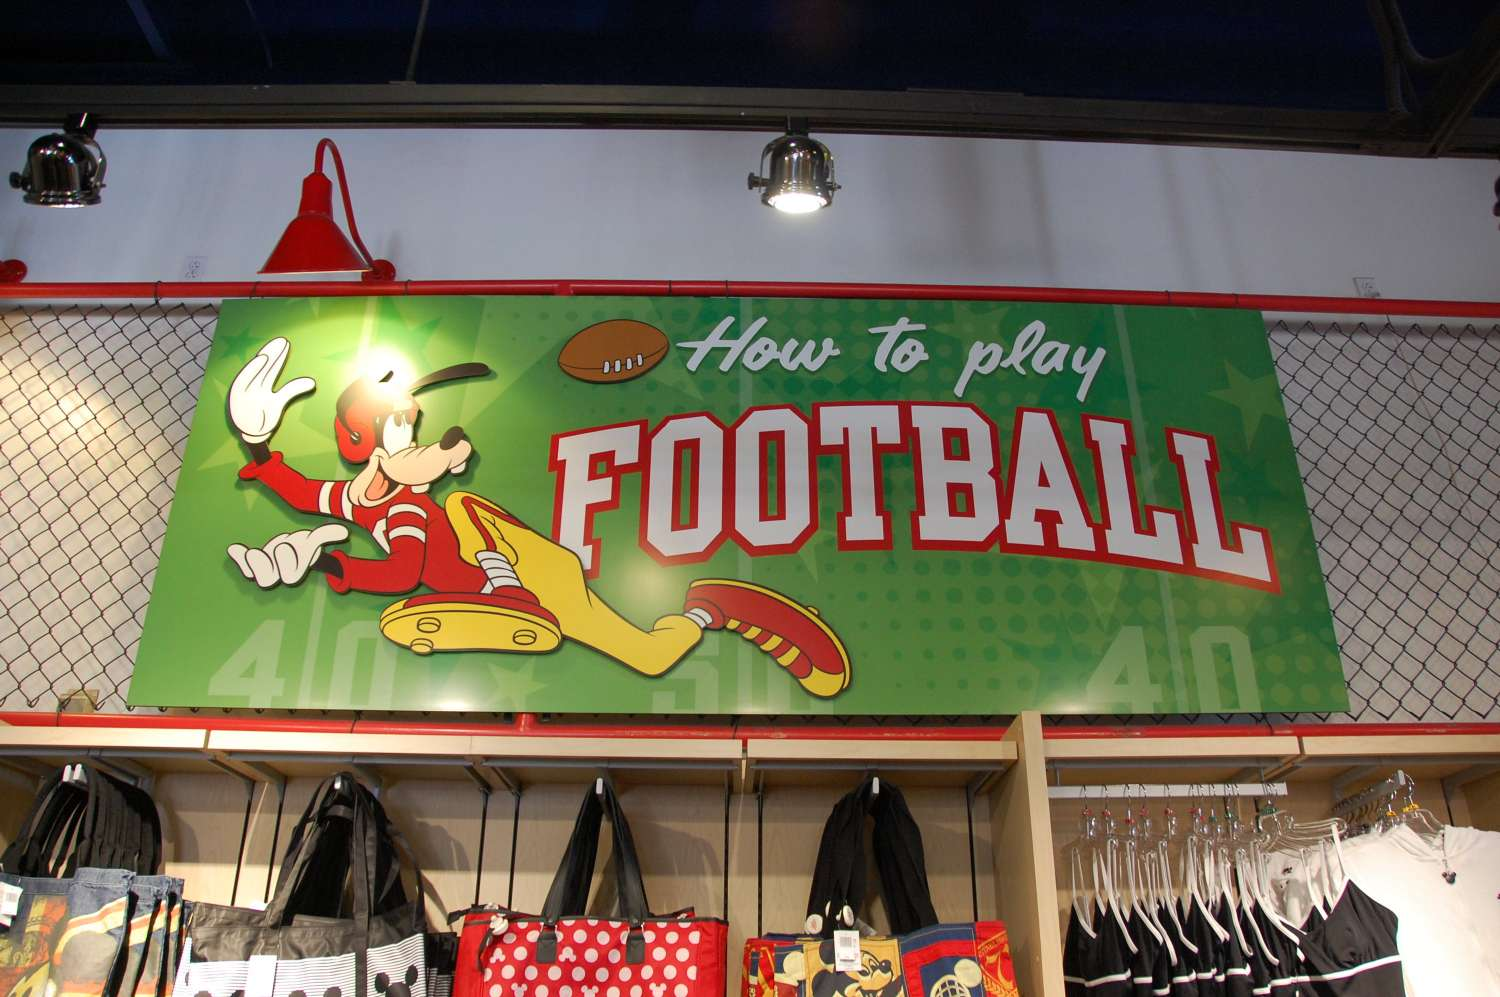 Disney's-All-Star-Sports-Sport-Goofy-Gifts-and-Sundries (3).JPG